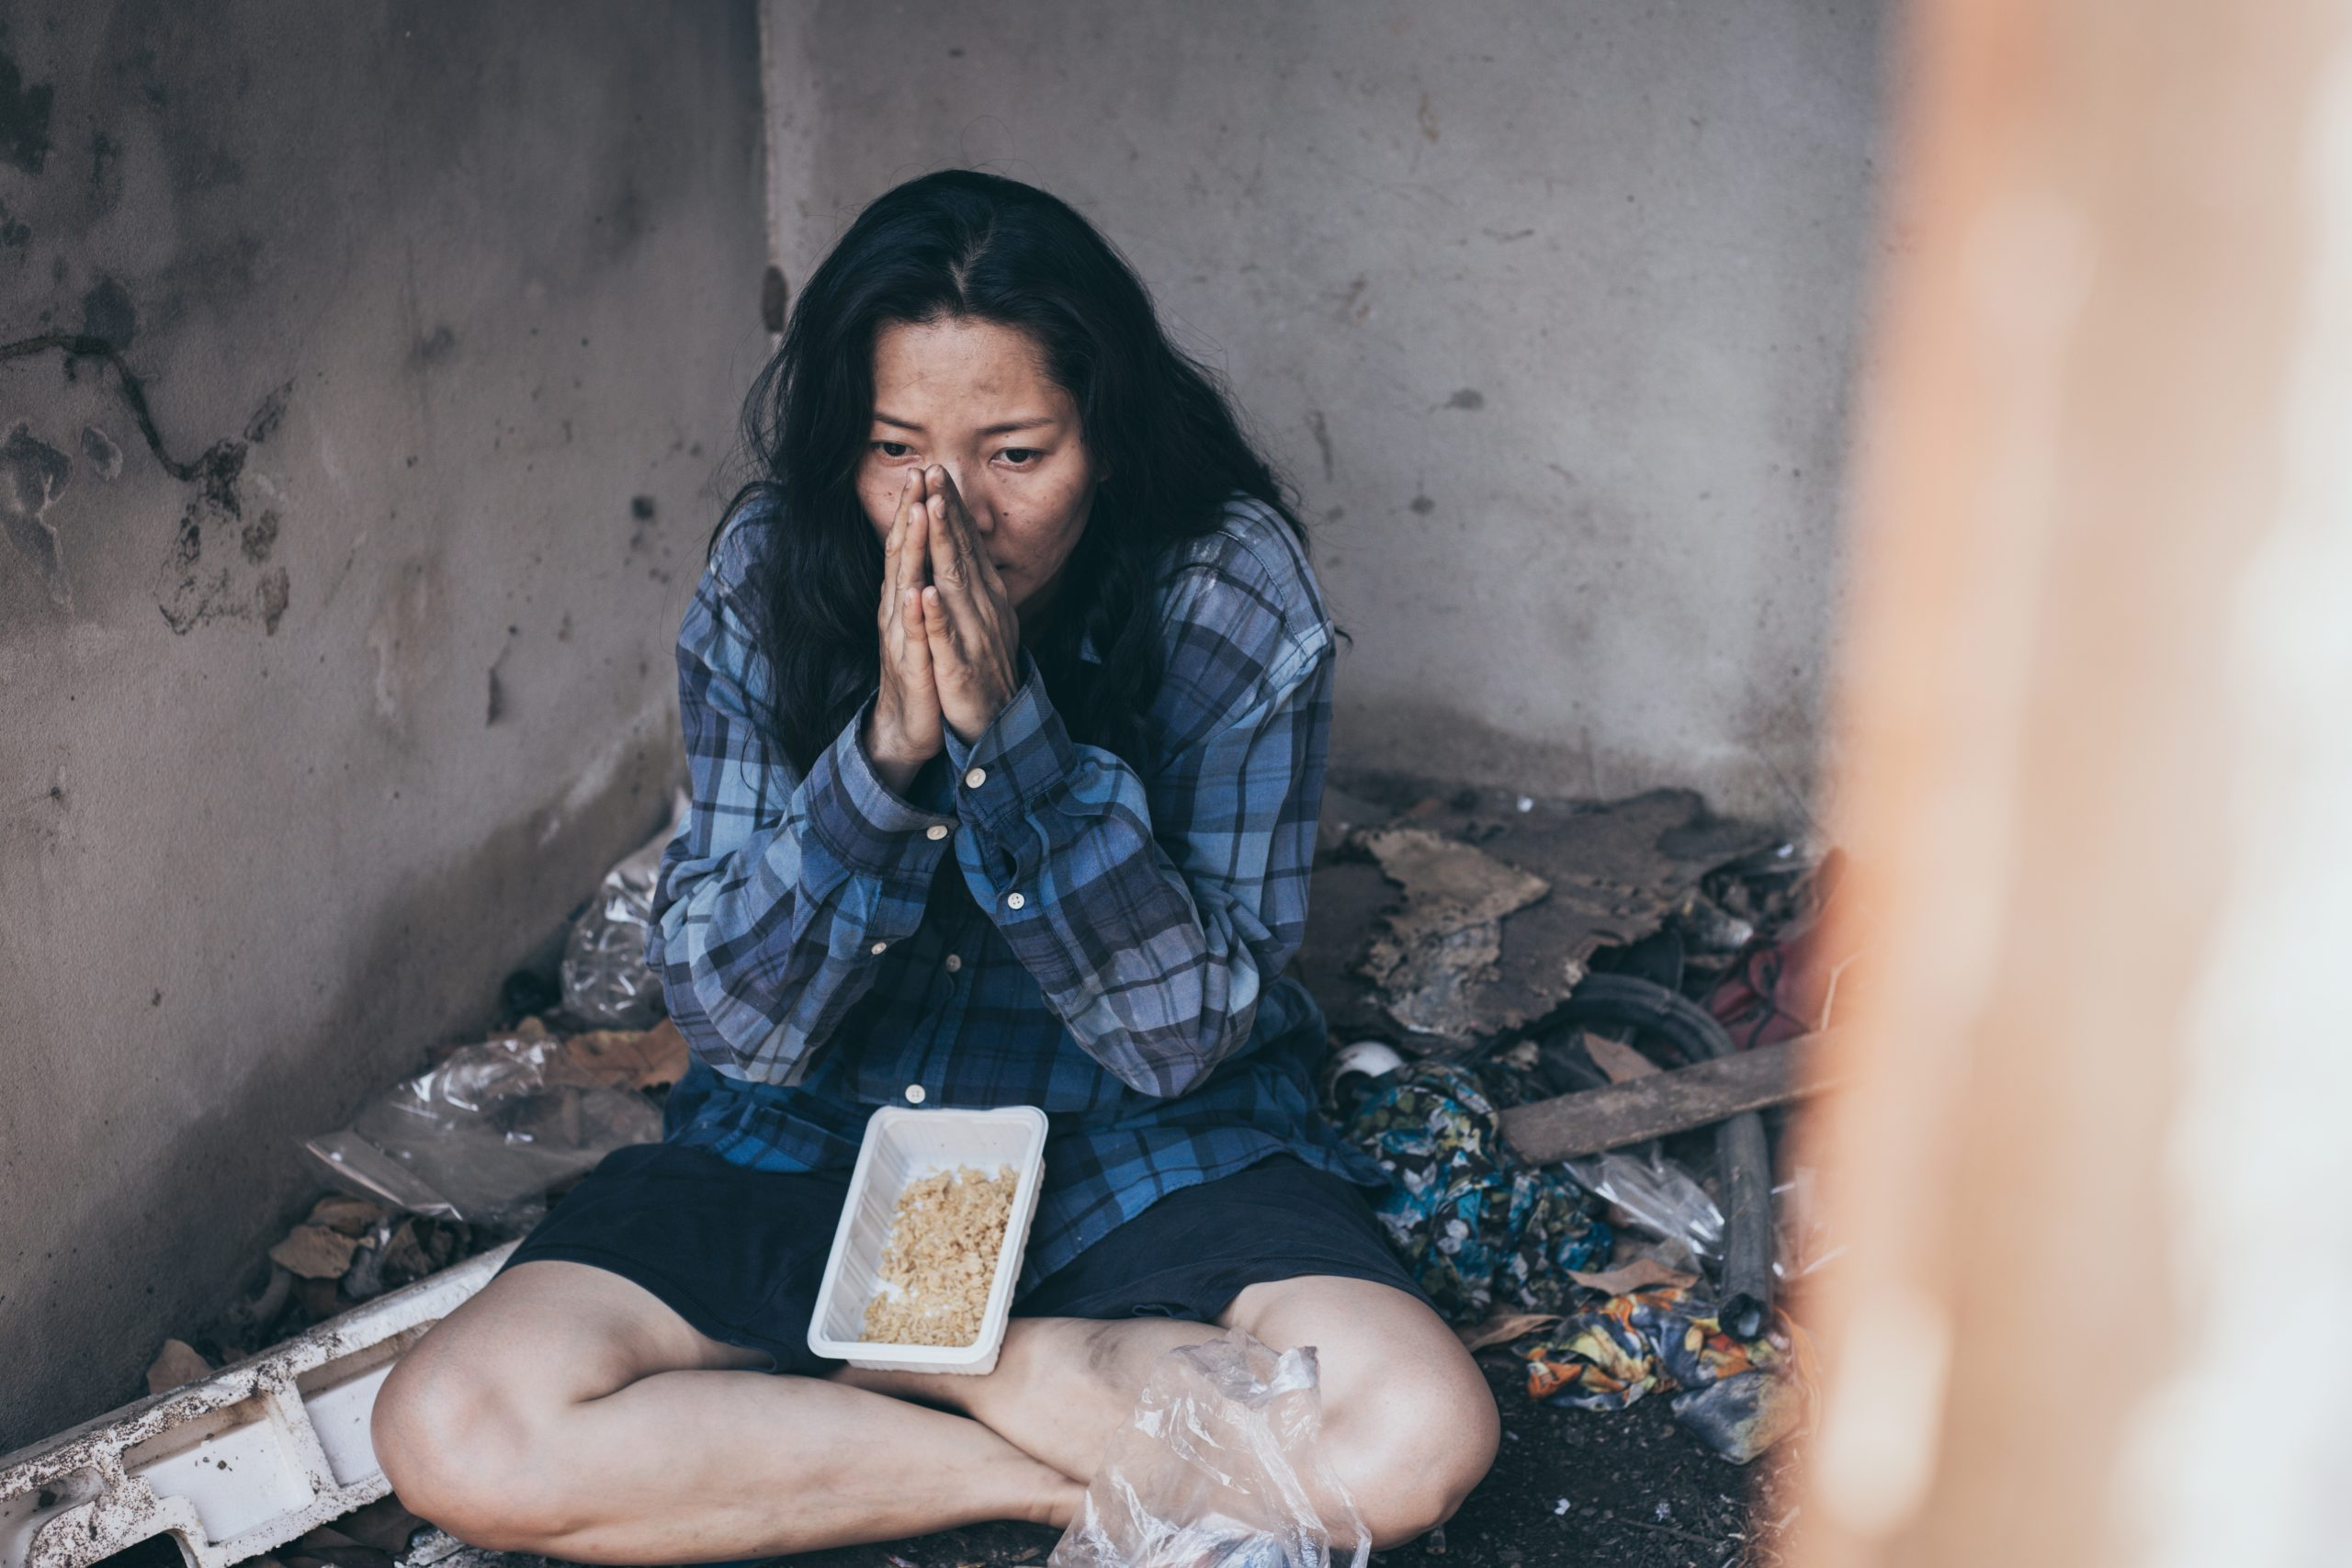 A woman in poverty hungry and devastated